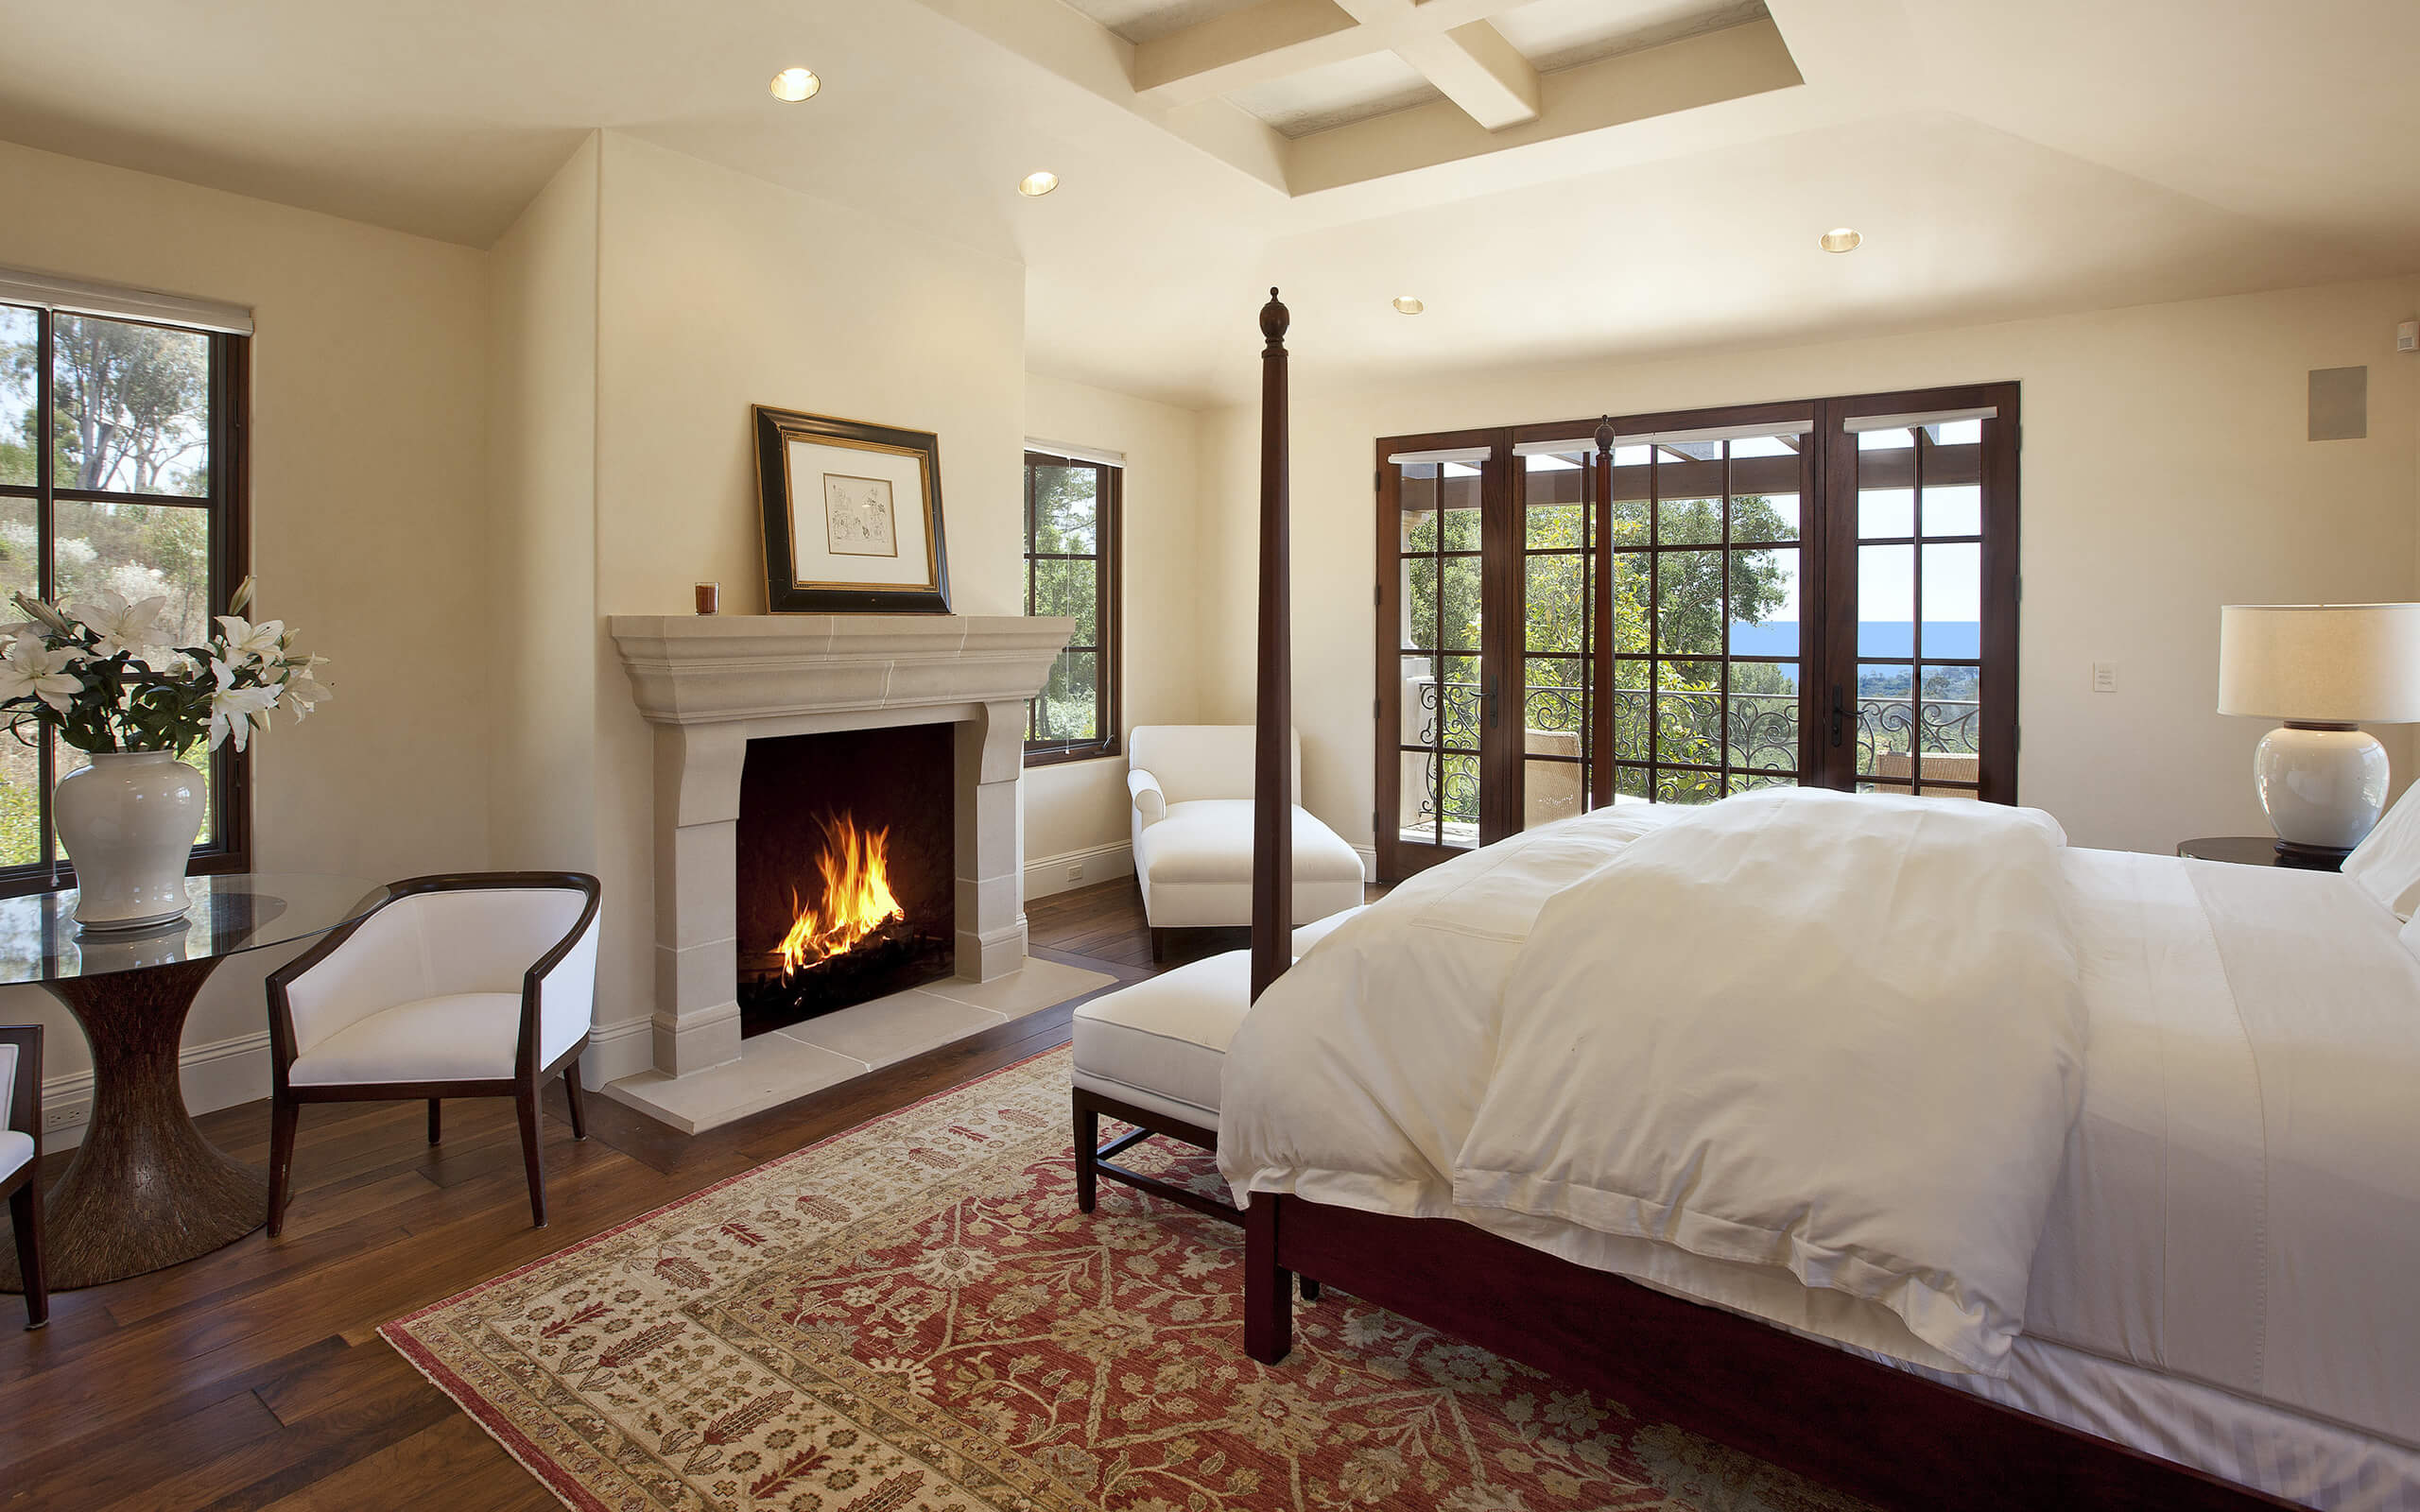 132 Bedroom Ideas And Designs Photo Gallery Stylish And